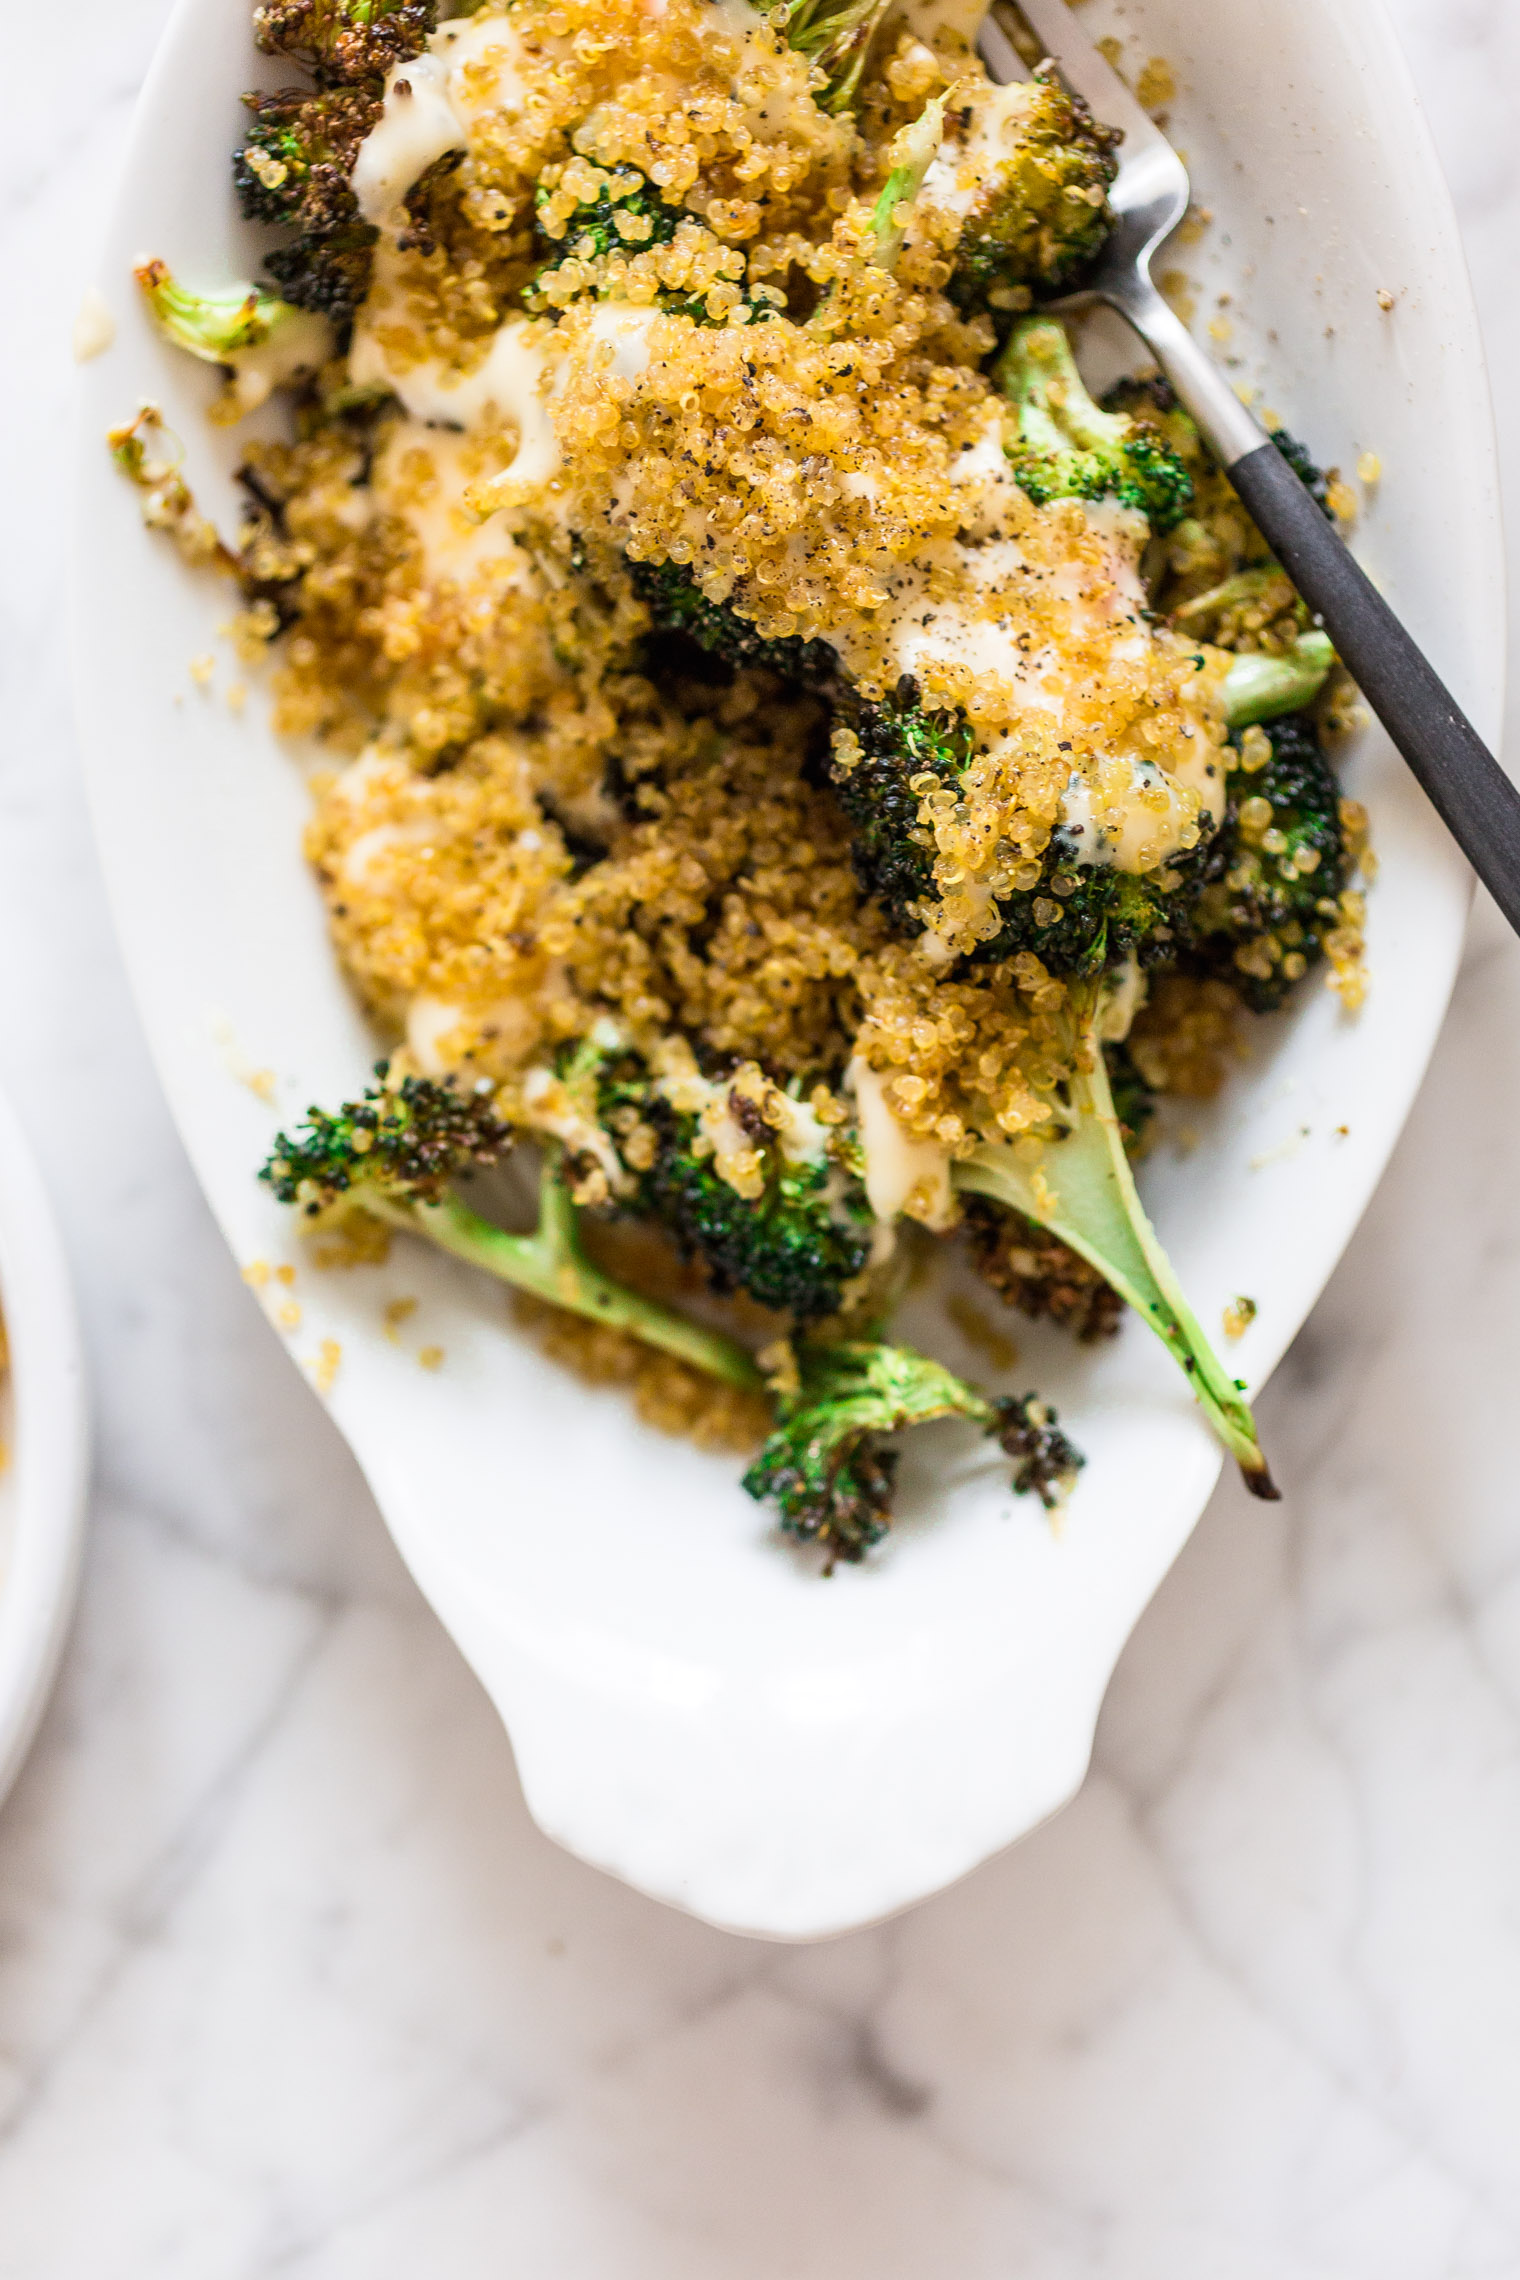 Roasted Broccoli and Cheddar with Crispy Quinoa